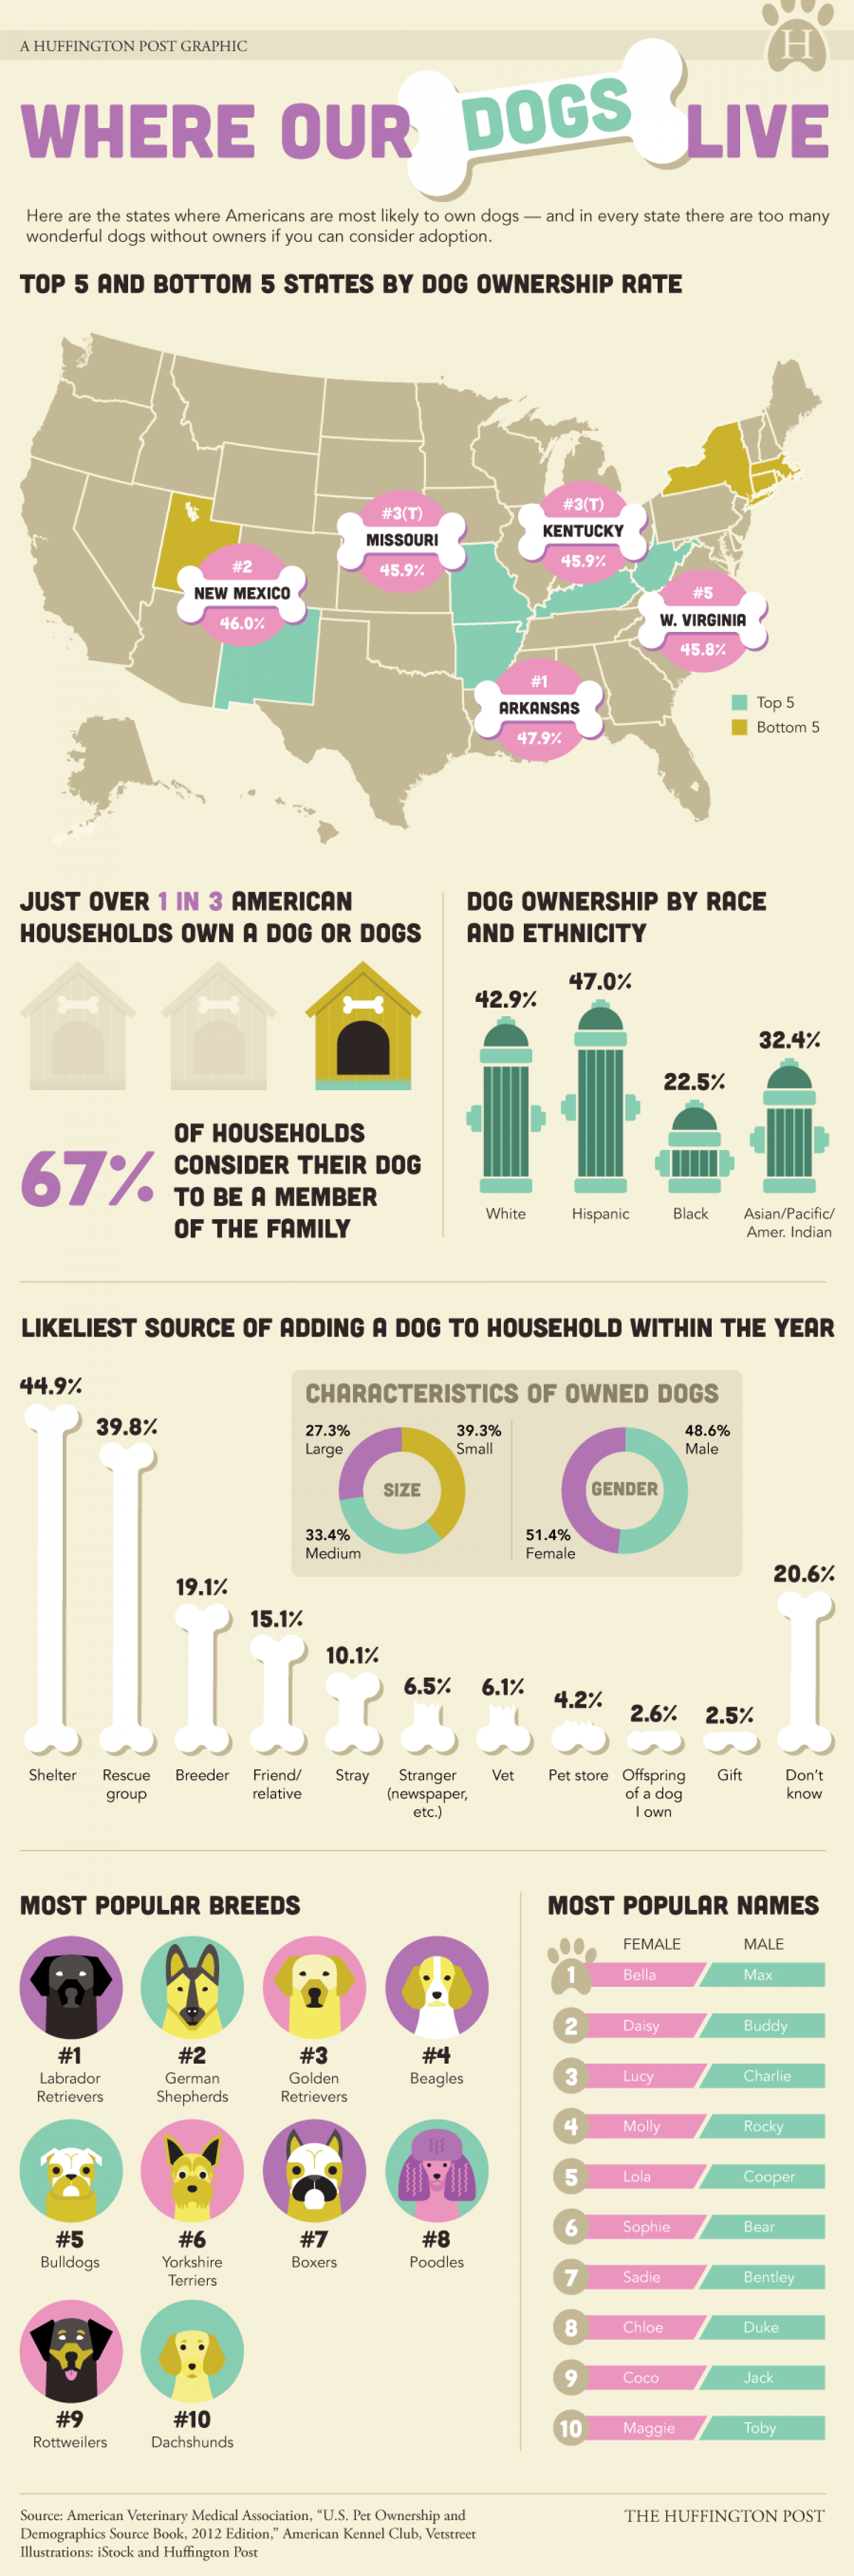 Where Our Dogs Live Infographic